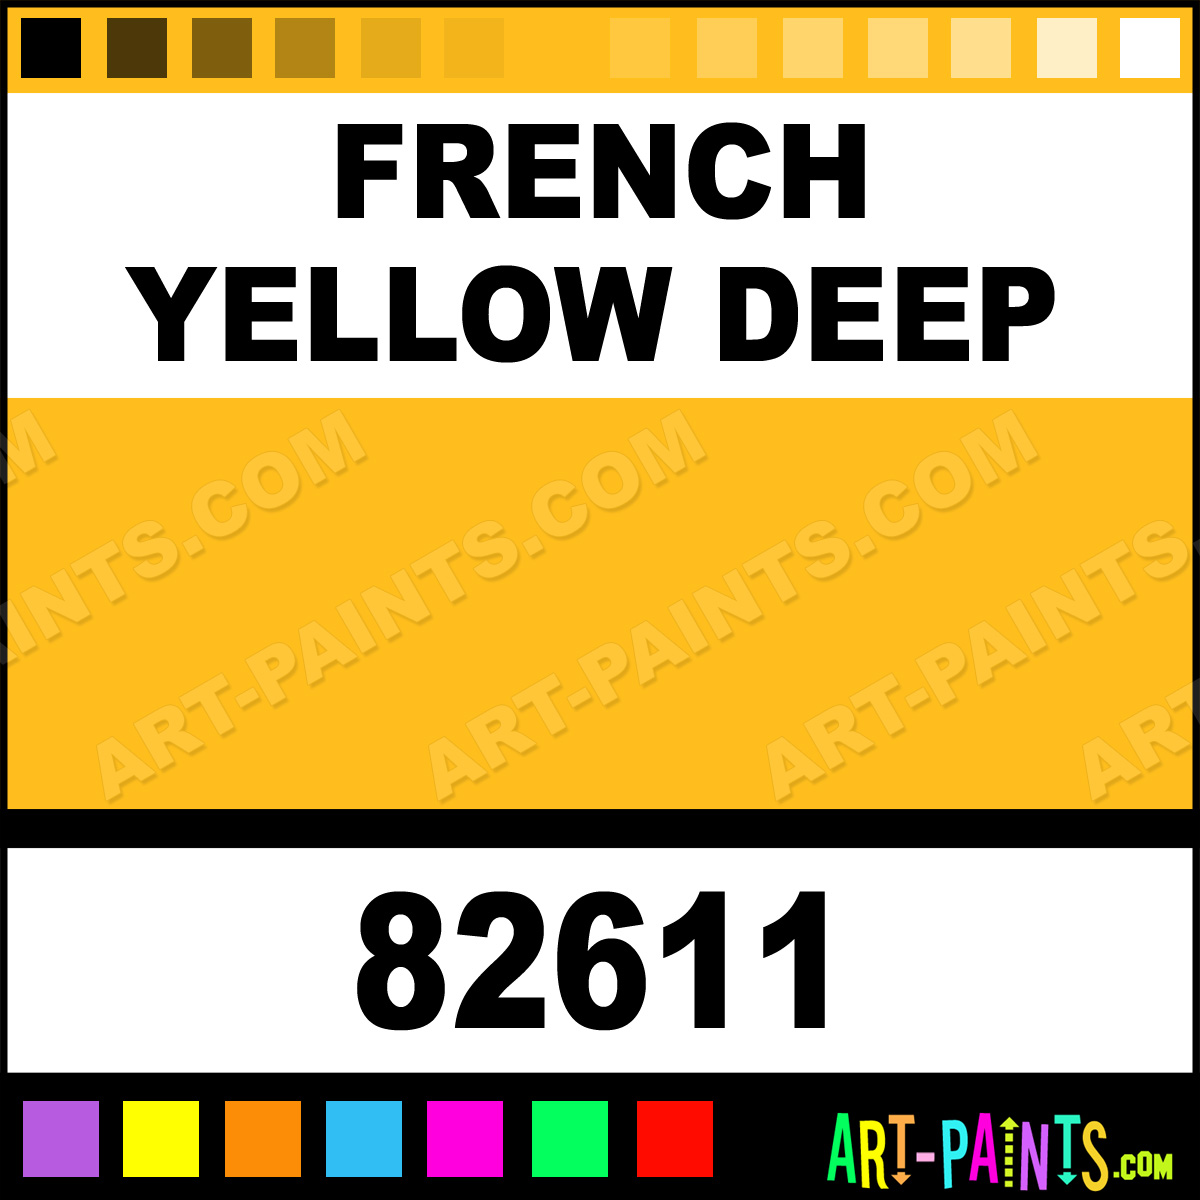 french yellow deep fine oil paints 82611 french yellow